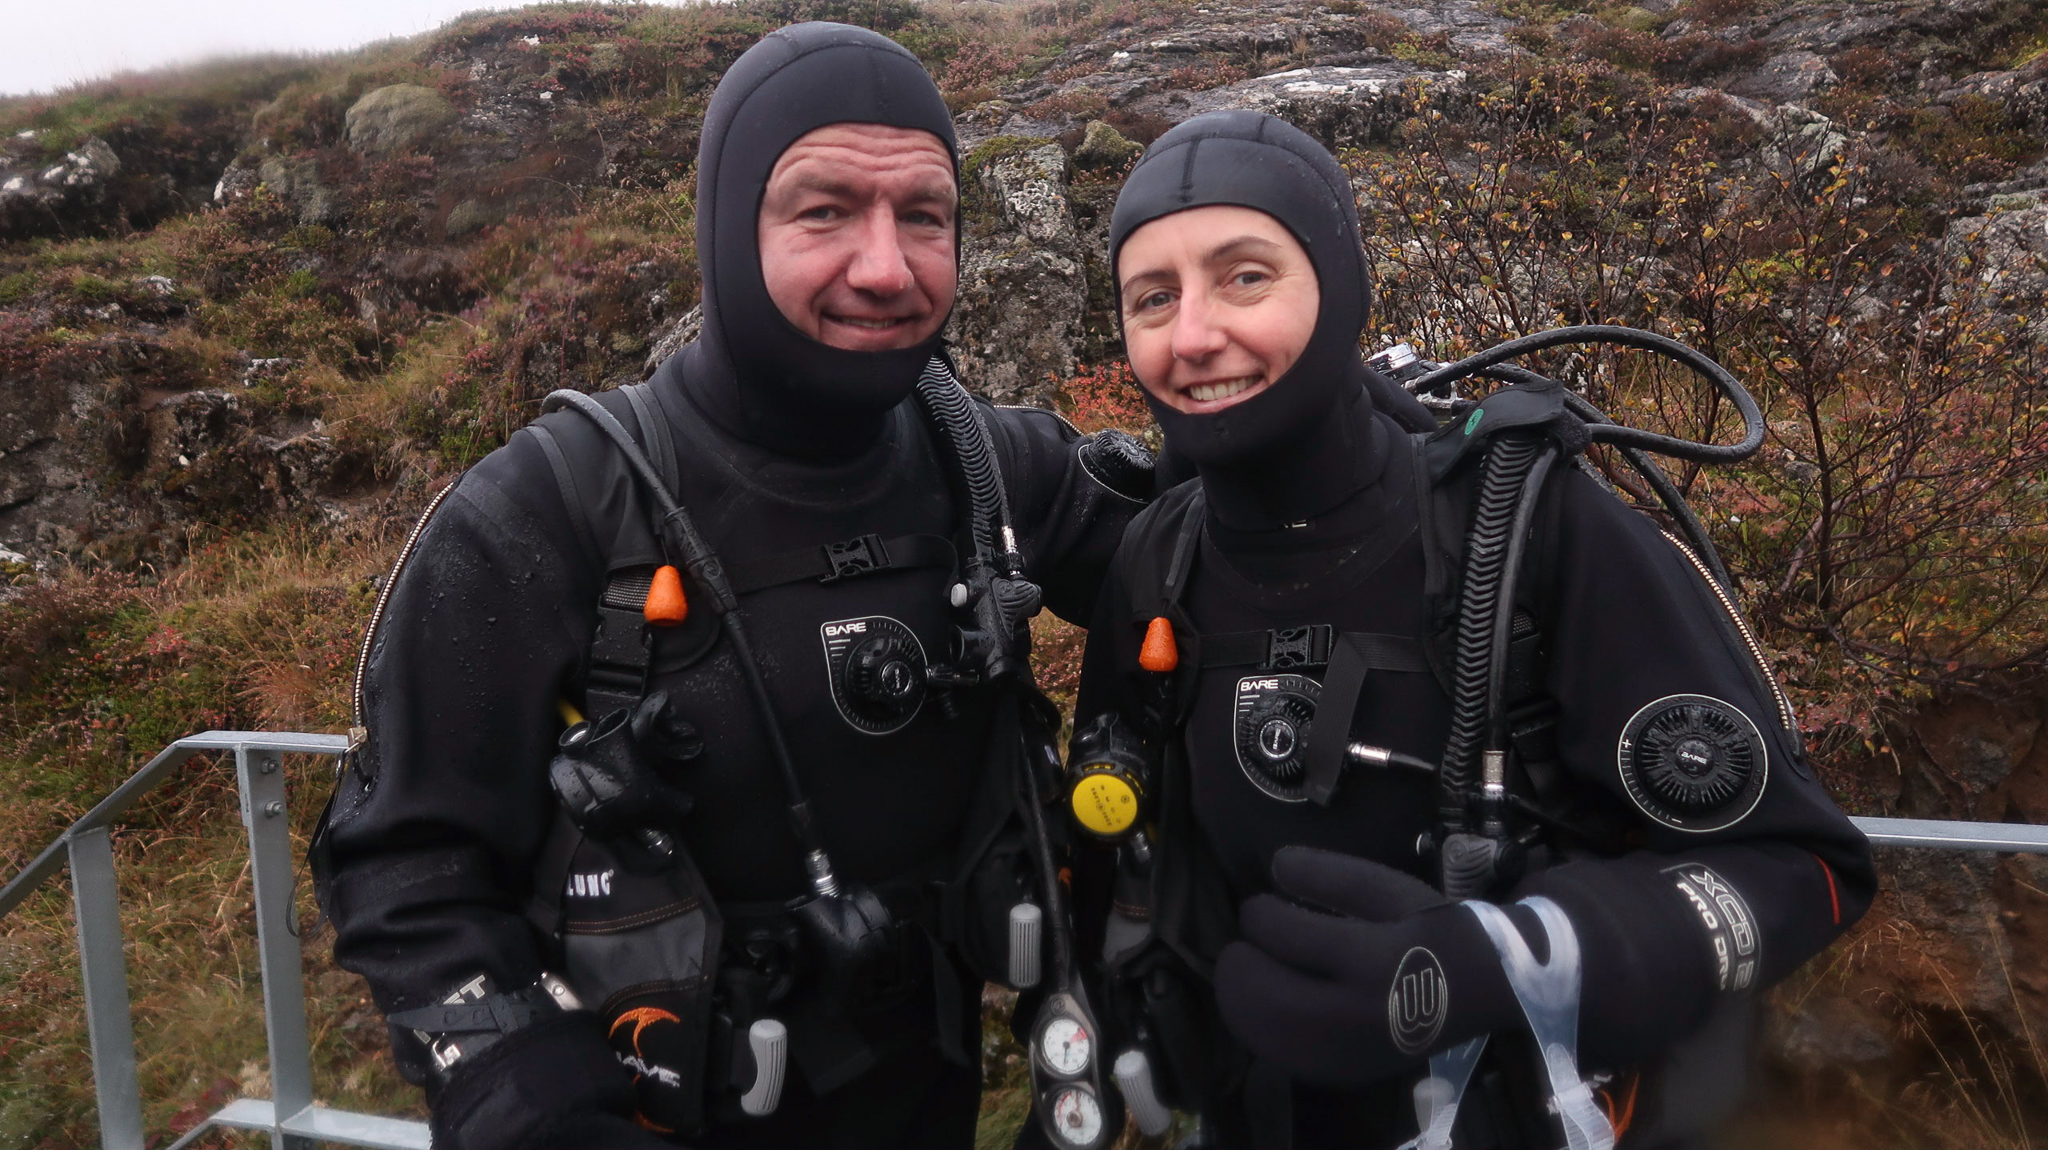 Des & Belinda kitted up and ready to dive at Silfra Fissure in Thingvellir National Park, Iceland. Photo by Tania Roque of DIVE.IS